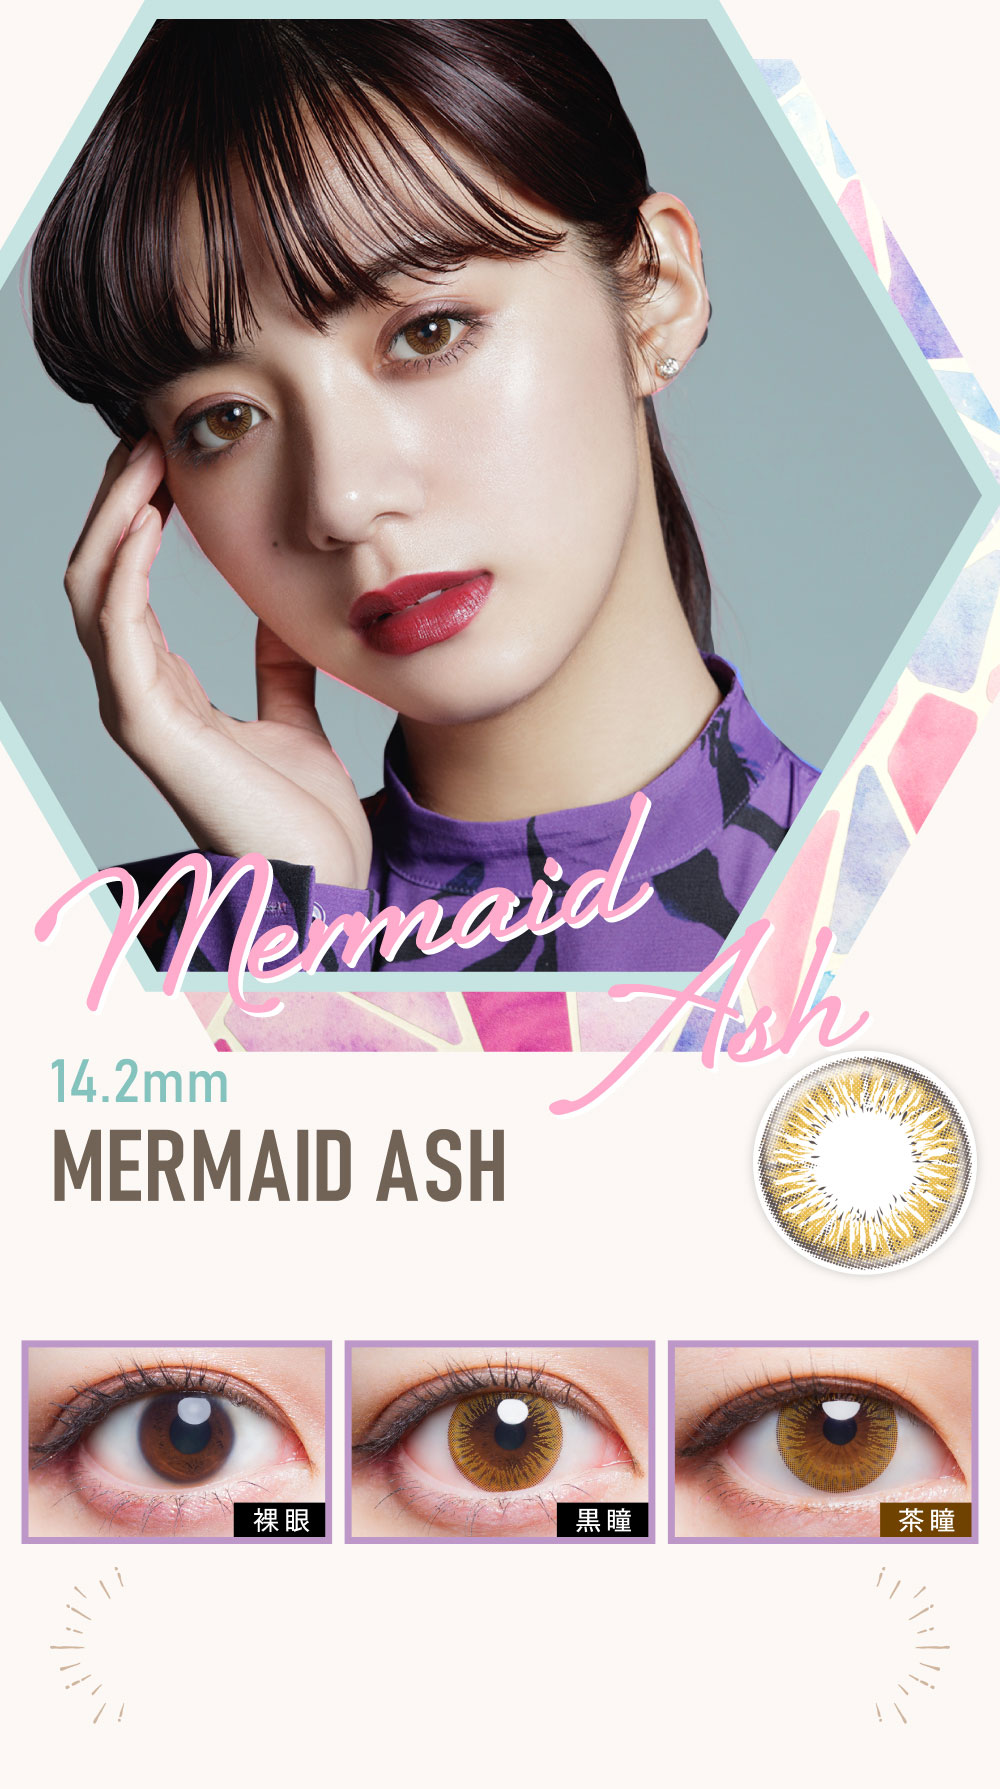 MERMAID ASH